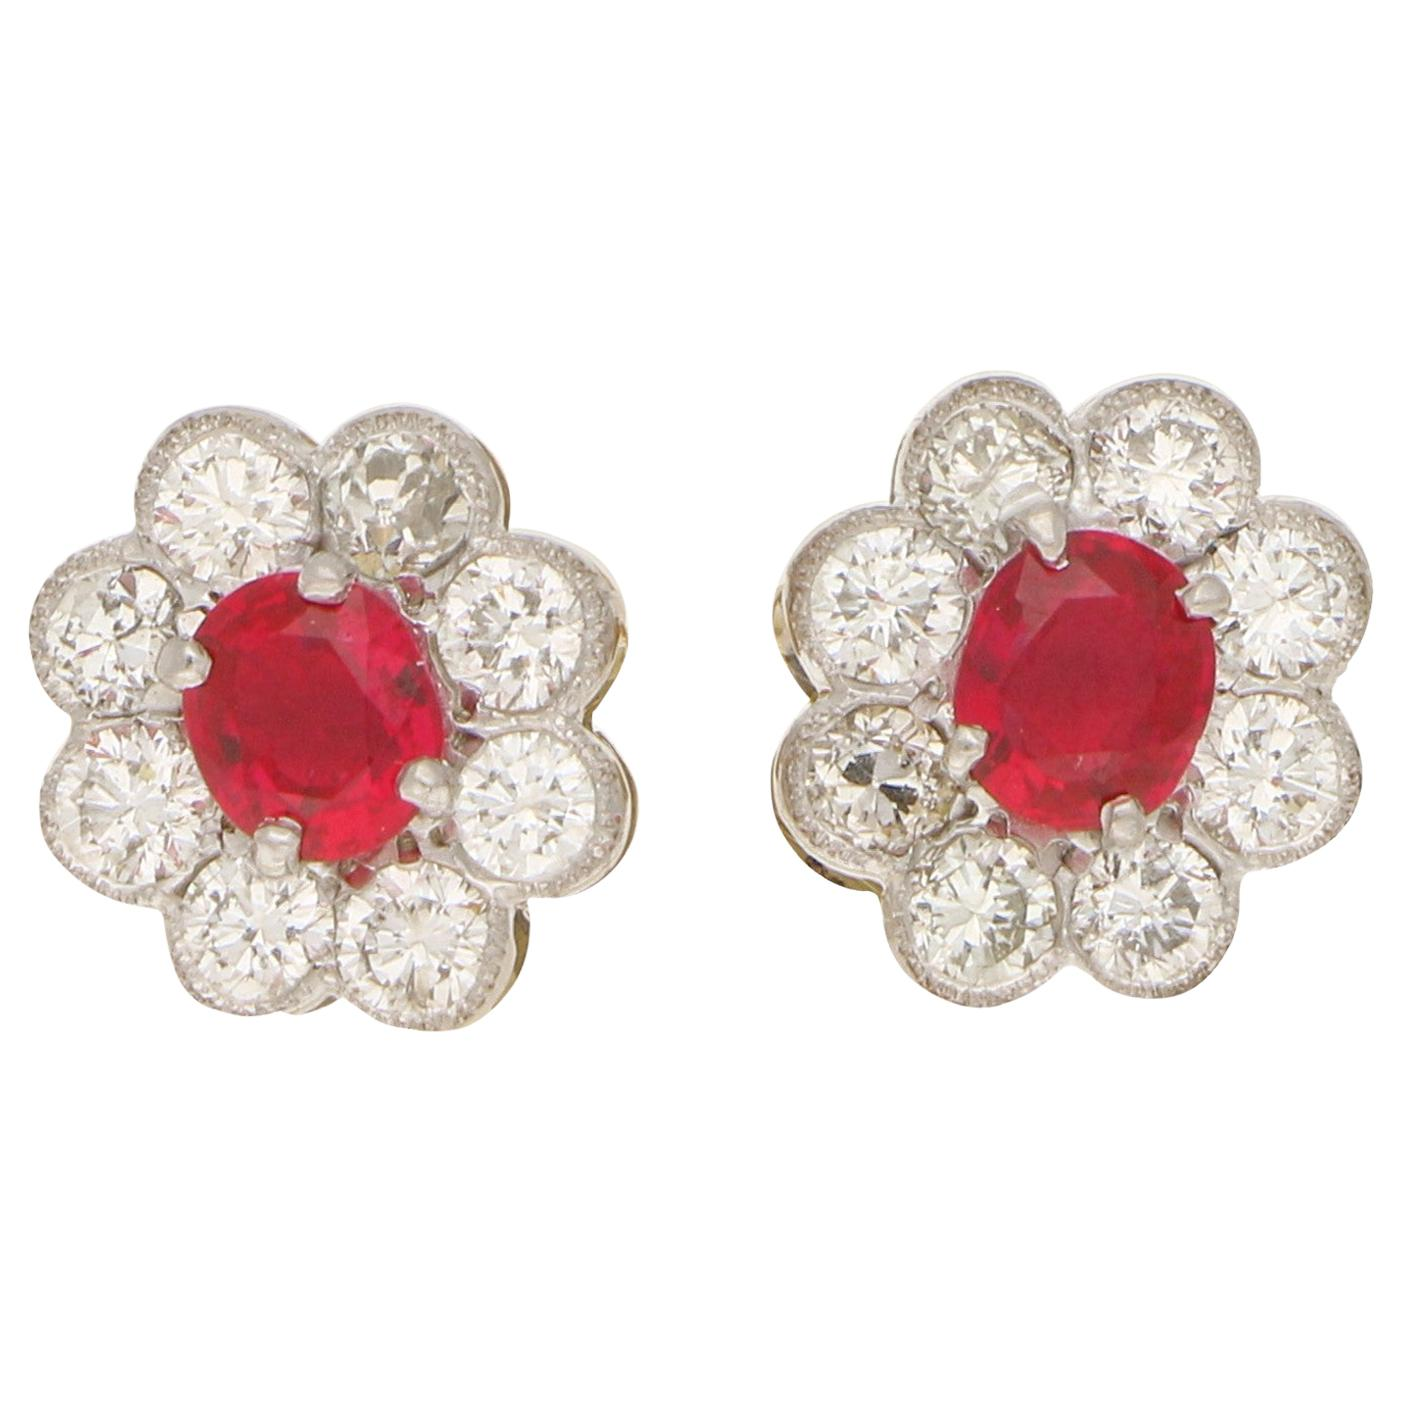 Ruby and Diamond Cluster Stud Earrings Set in 18 Karat Yellow and White Gold